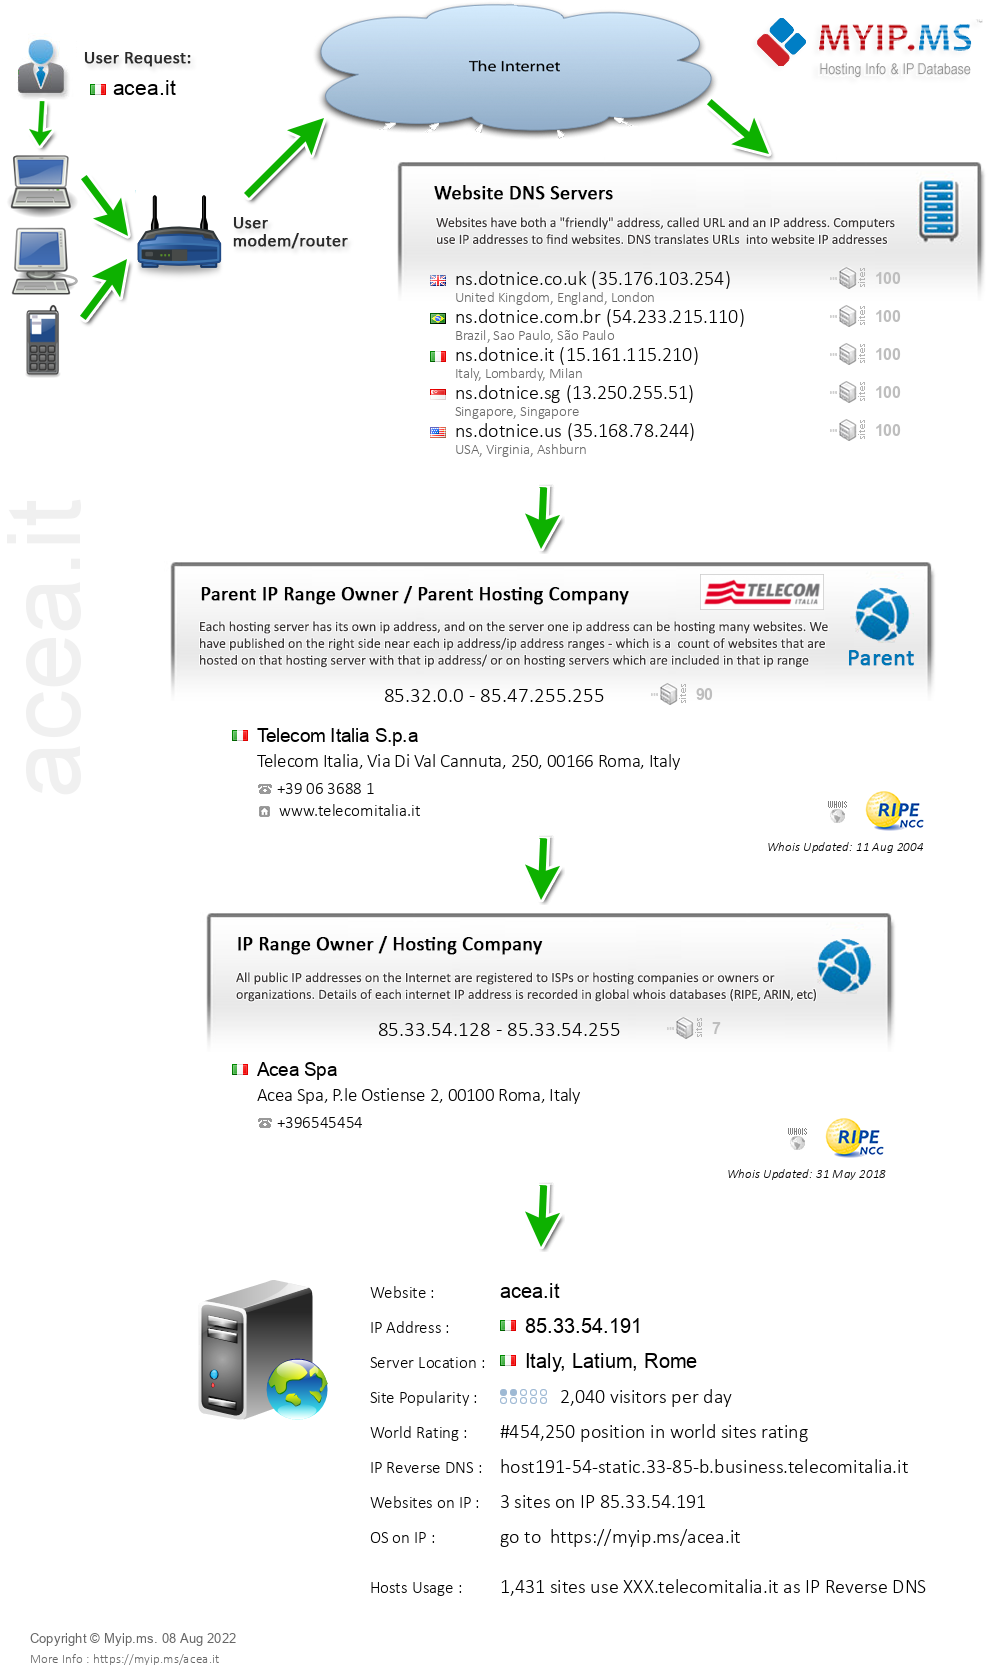 Acea.it - Website Hosting Visual IP Diagram